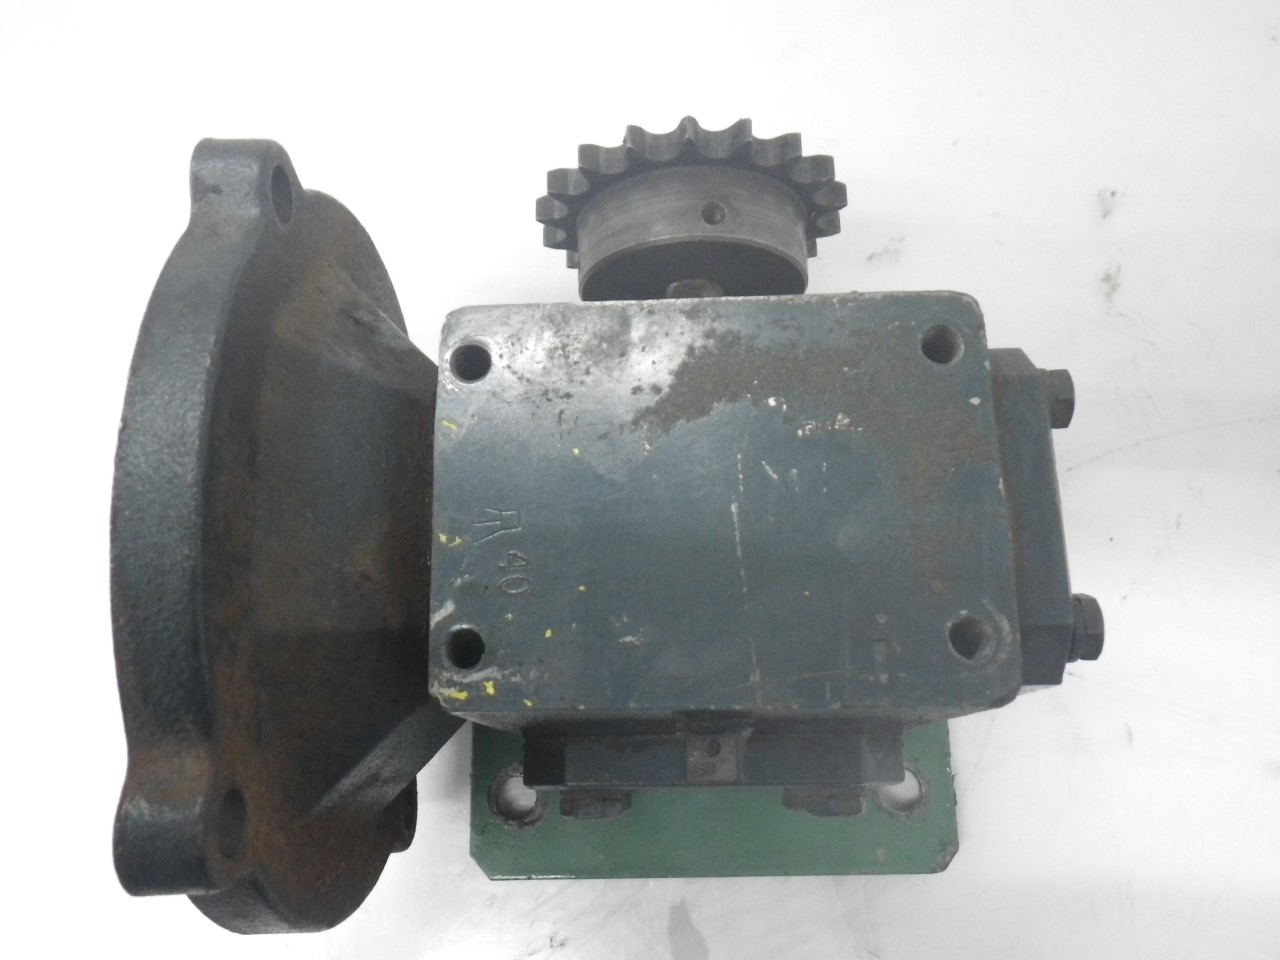 IMGP6972M01133-2 Flexaline GearBox 0.260 inhp, ratio140 motor frame56c (Used Tested) (6)